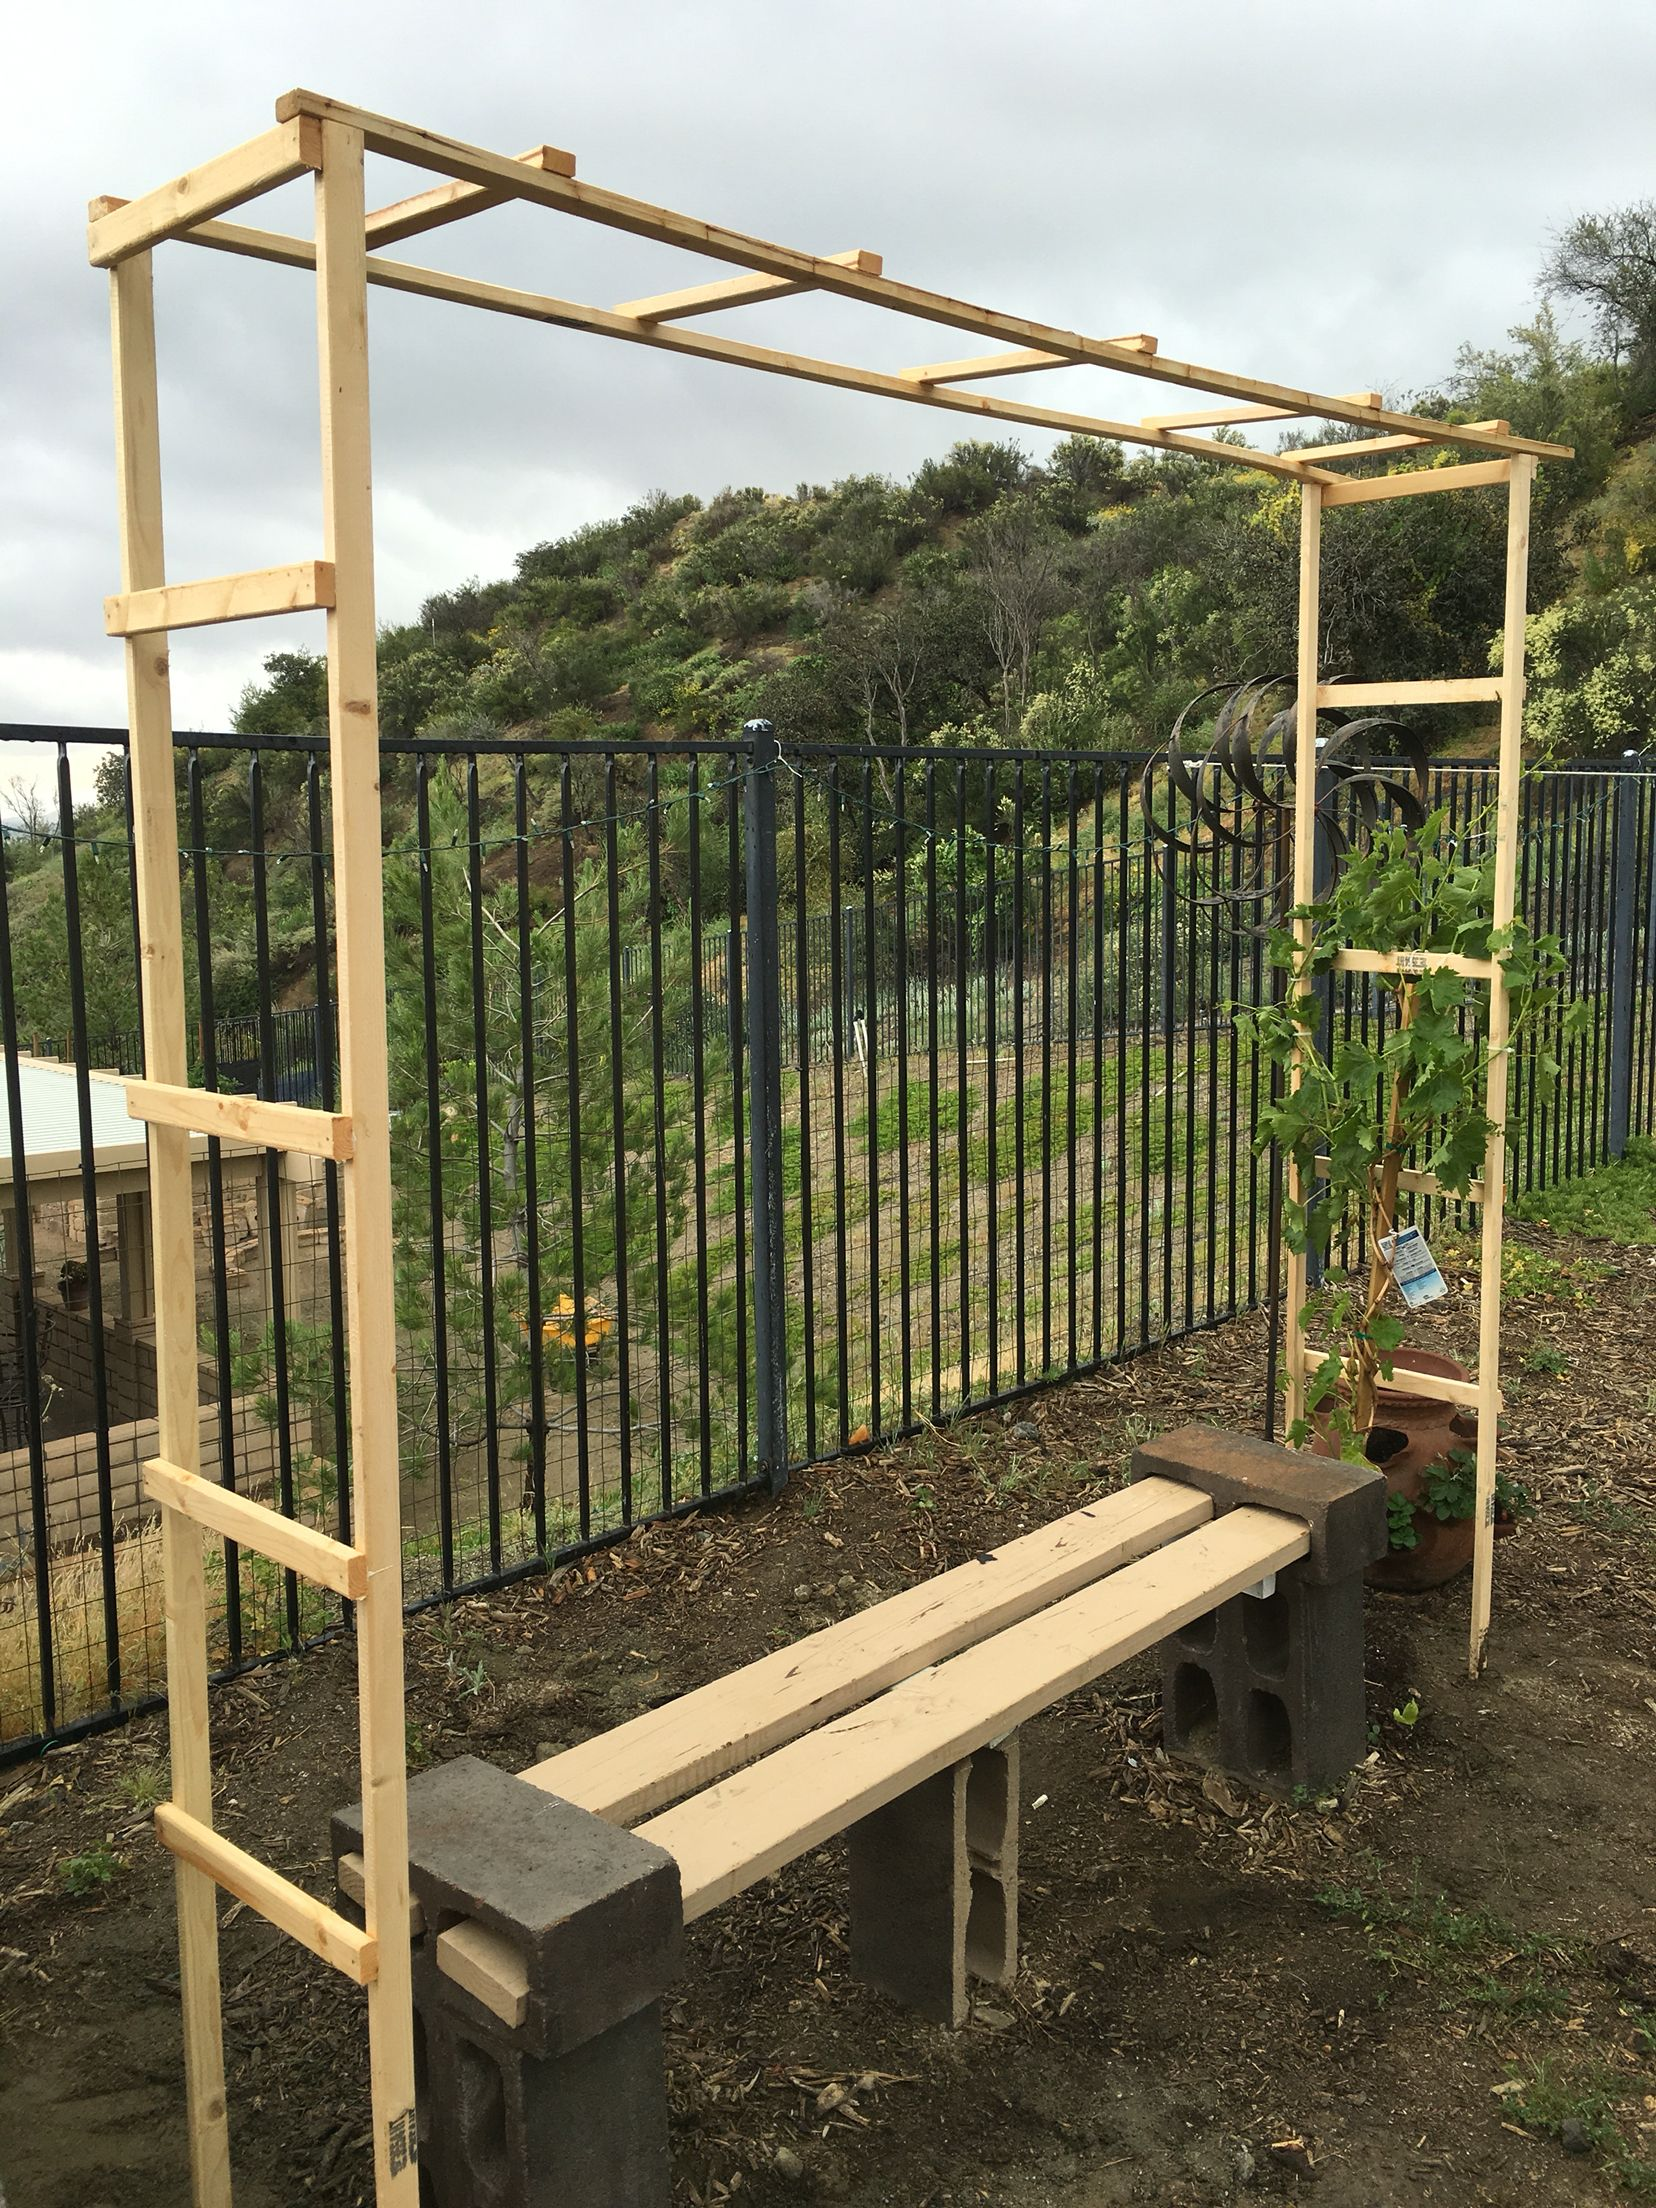 Trellis For My Grape Vine Simple Diy Under 10